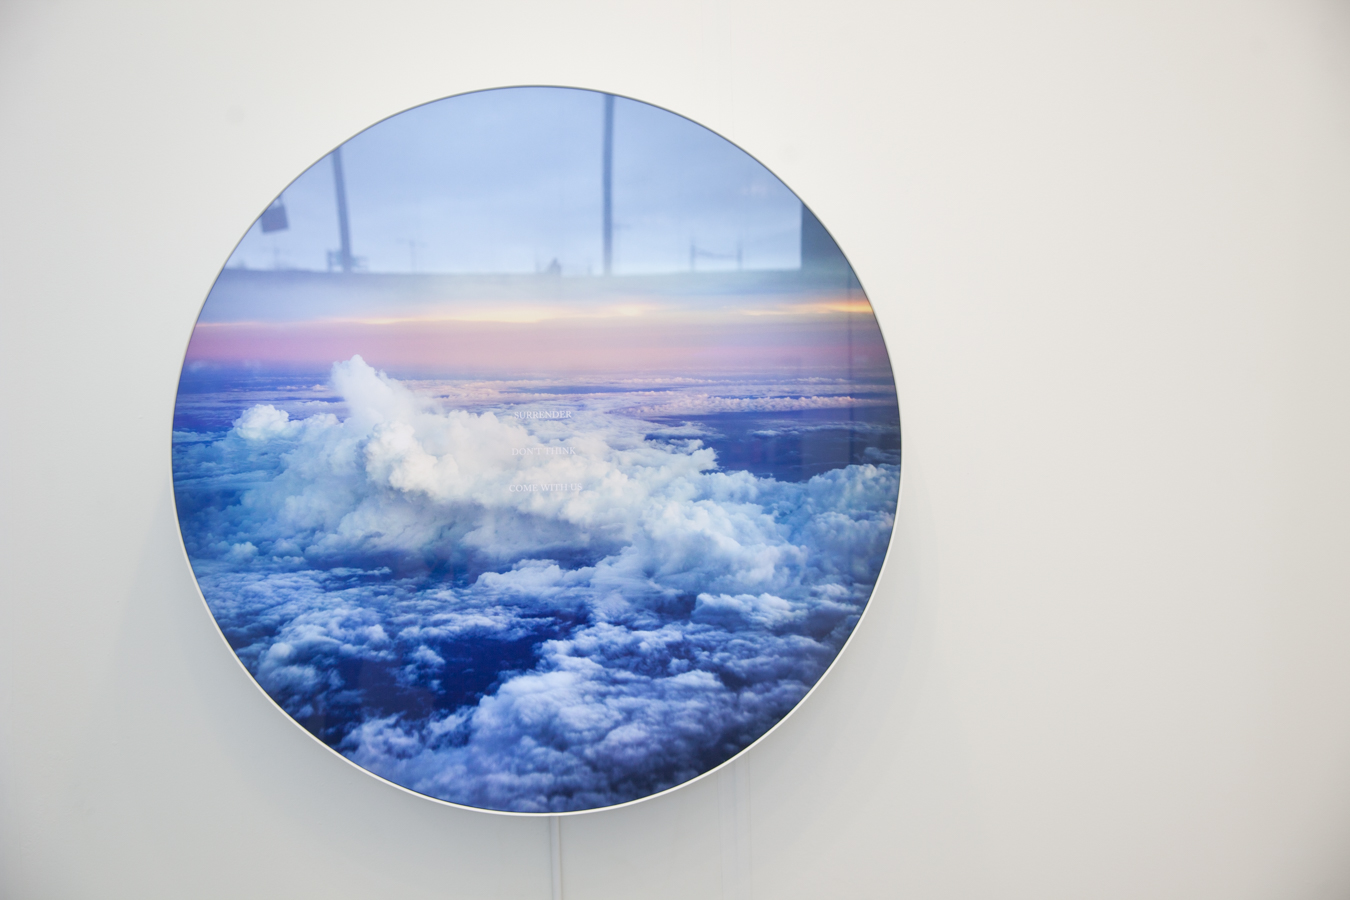 Doug Aitken at 303 Gallery